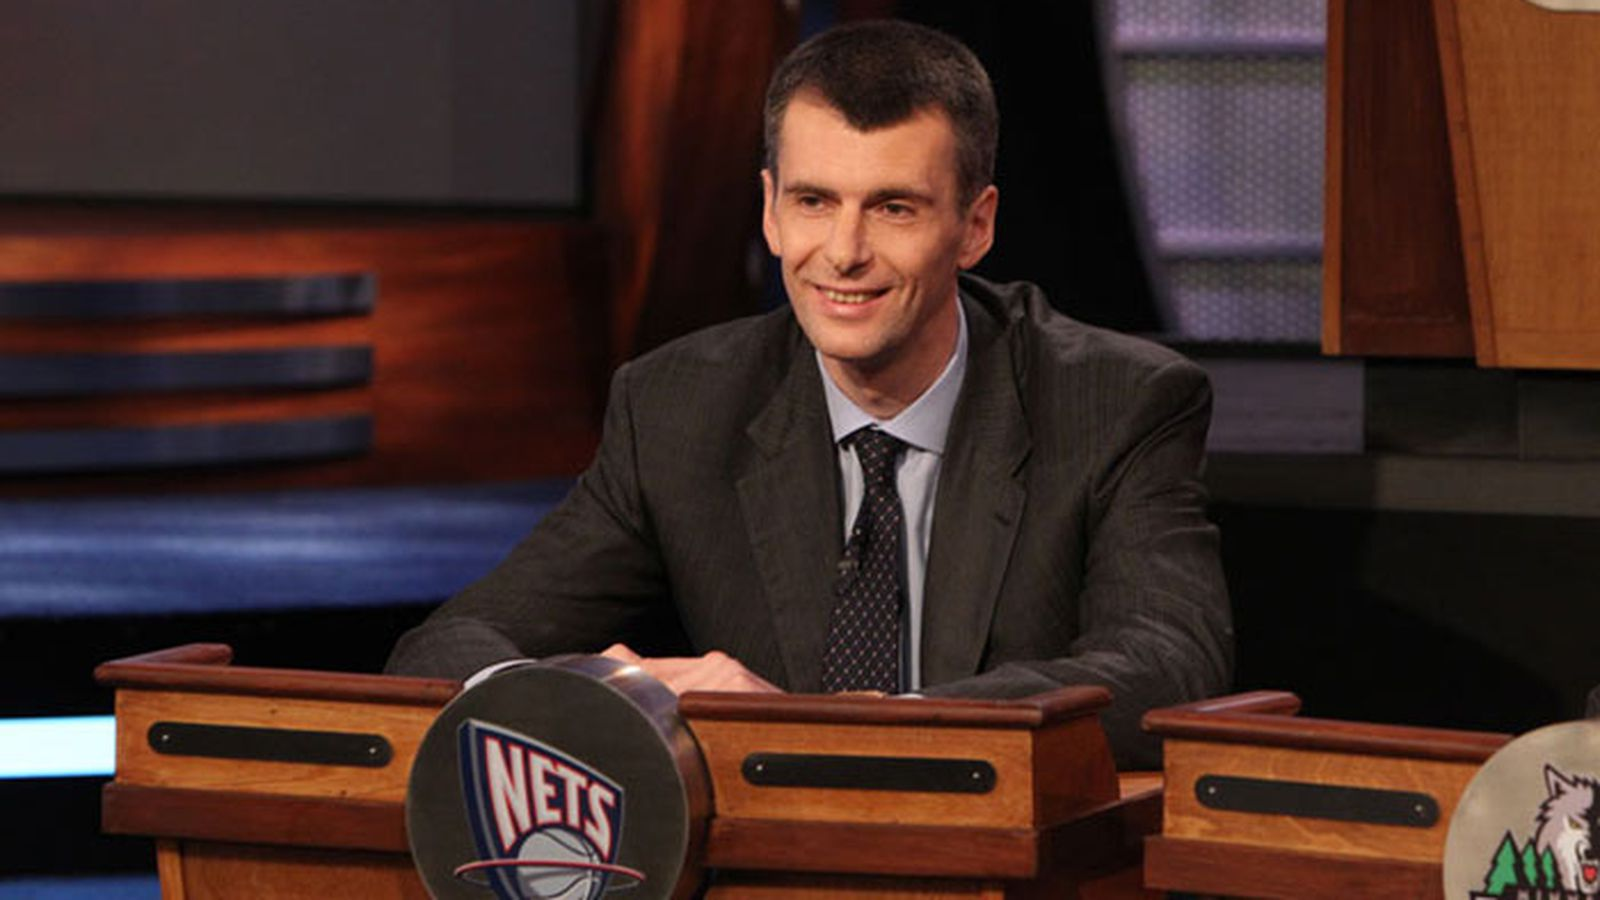 Mikhail_prokhorov_at_2010_draft_lottery__new_jersey_nets_.0